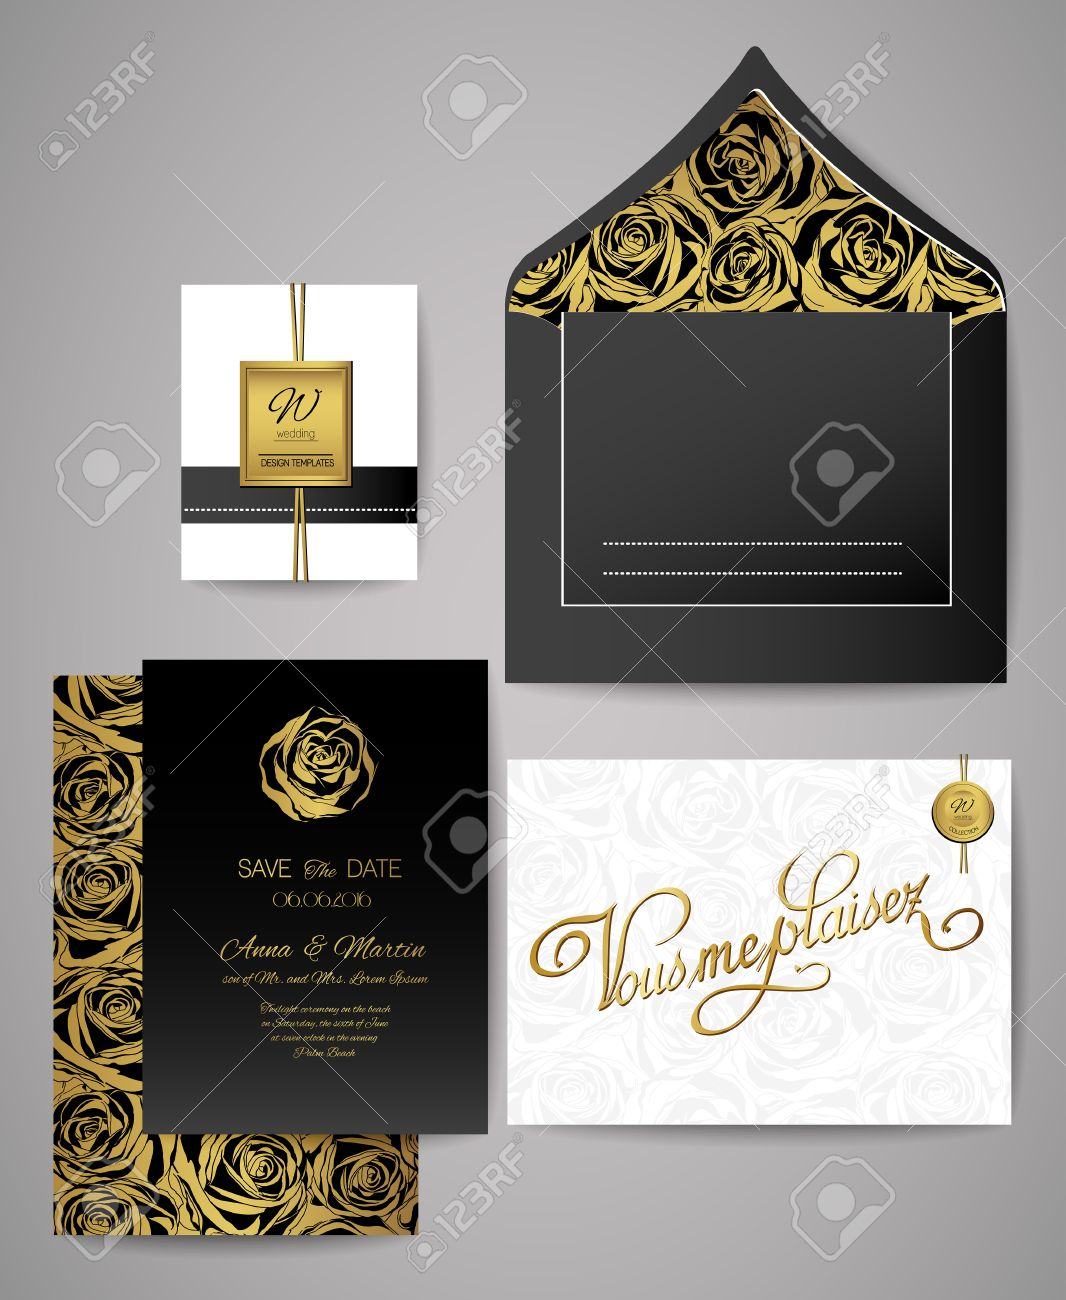 Set Of Gold And Black Floral Invitation Cards. Wedding Invitations,..  Royalty Free Cliparts, Vectors, And Stock Illustration. Image 64611376.